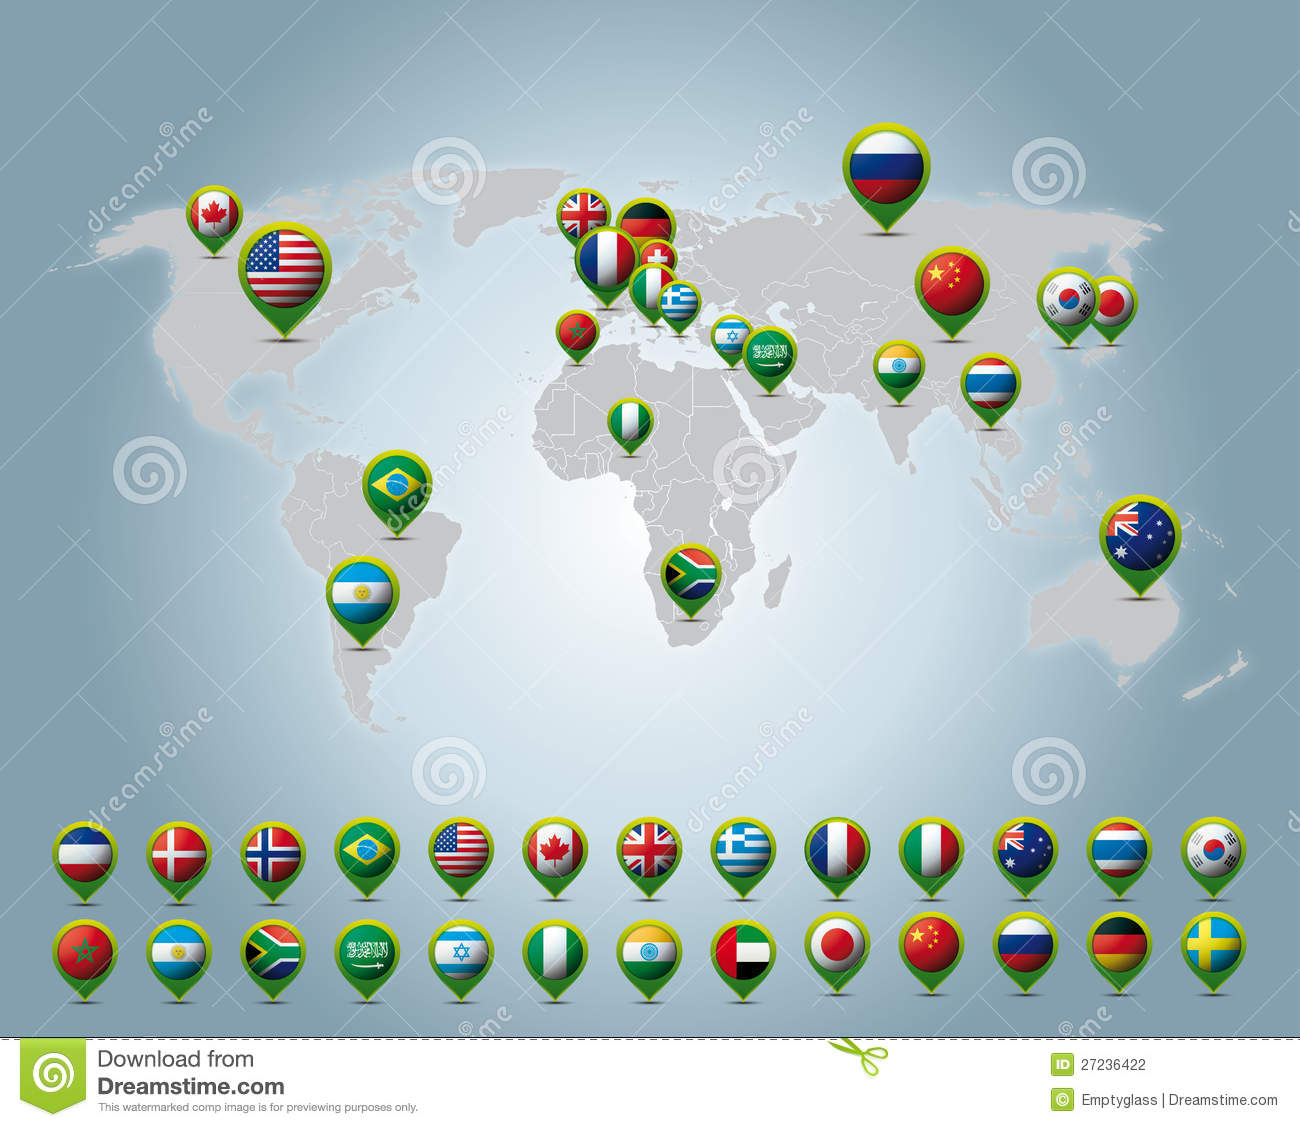 Stock Photography Countries 3d Pins Image27236422 on file symbol thumbs up color